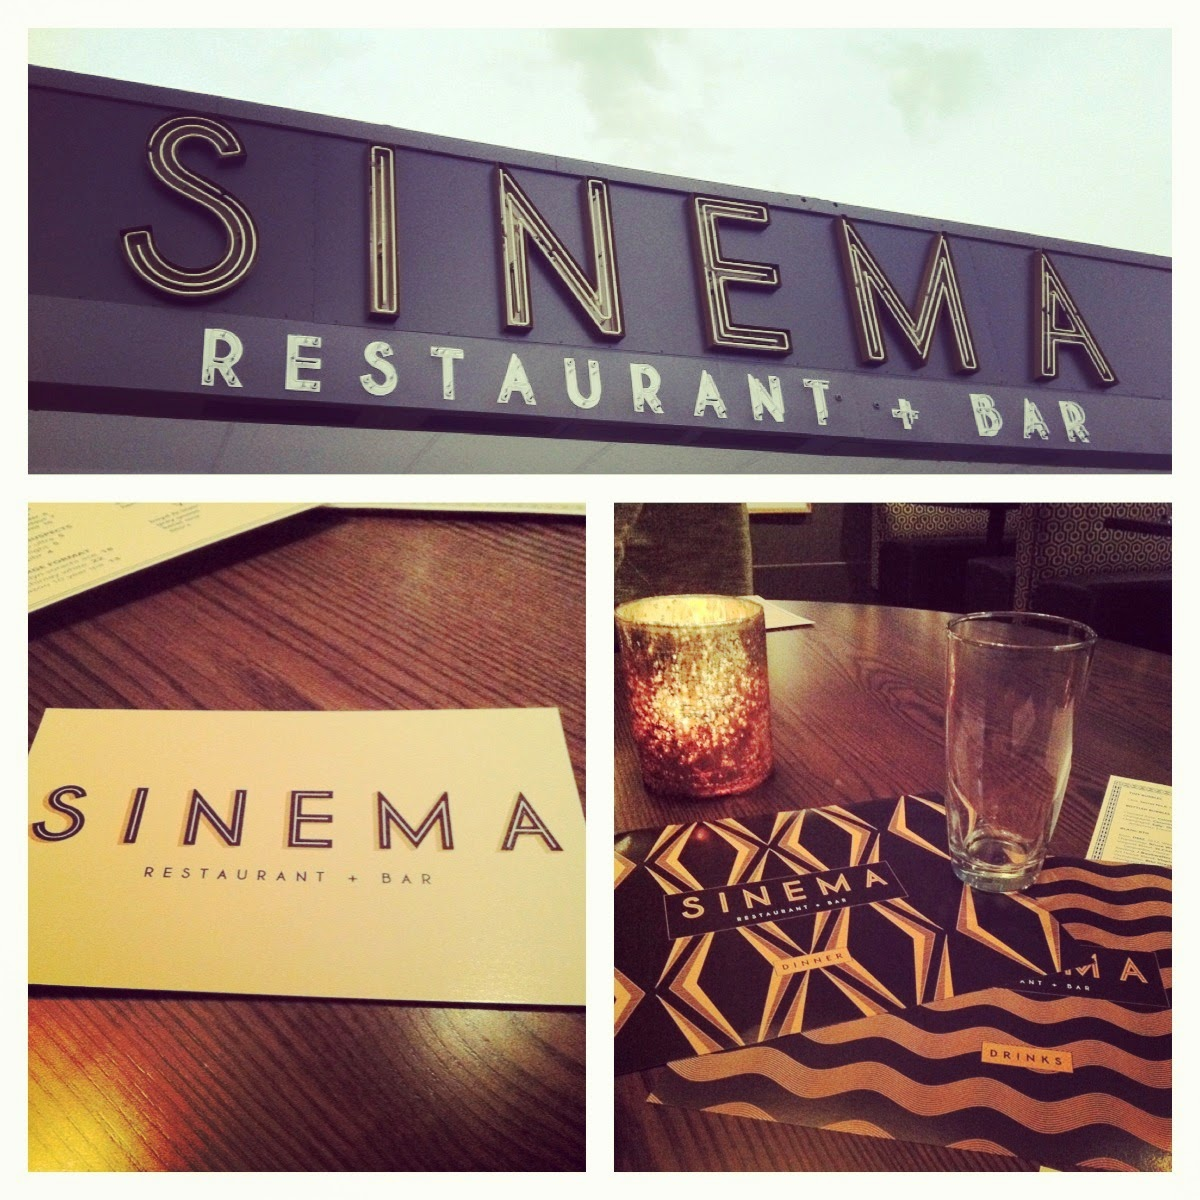 Sinema Restaurant